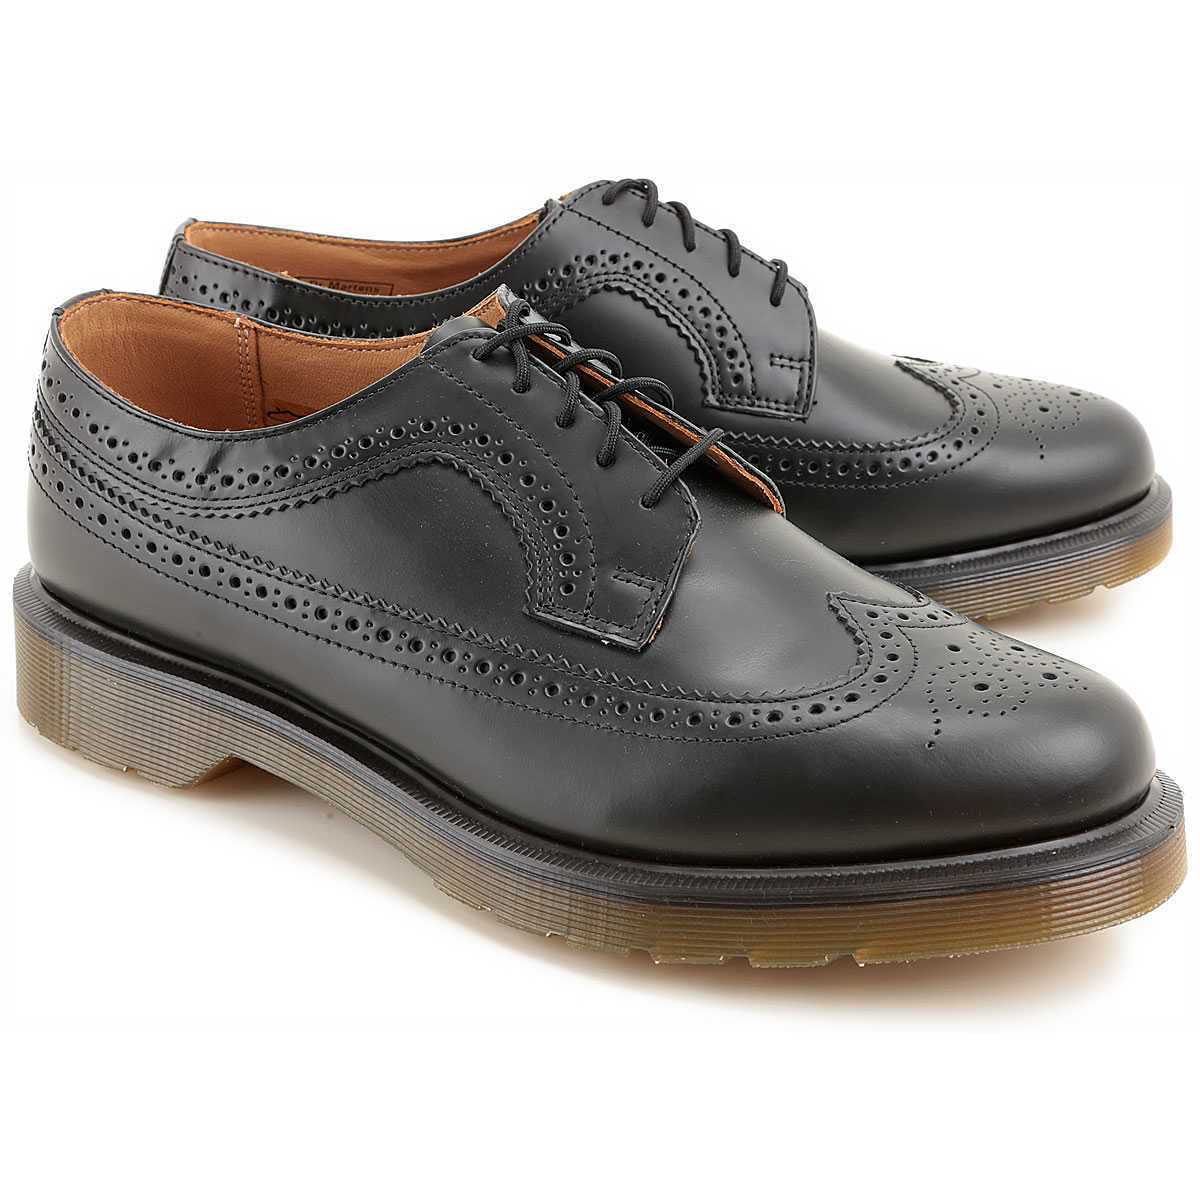 Dr. Martens Lace Up Shoes for Men Oxfords Derbies and Brogues On Sale in Outlet DK - GOOFASH - Mens FORMAL SHOES